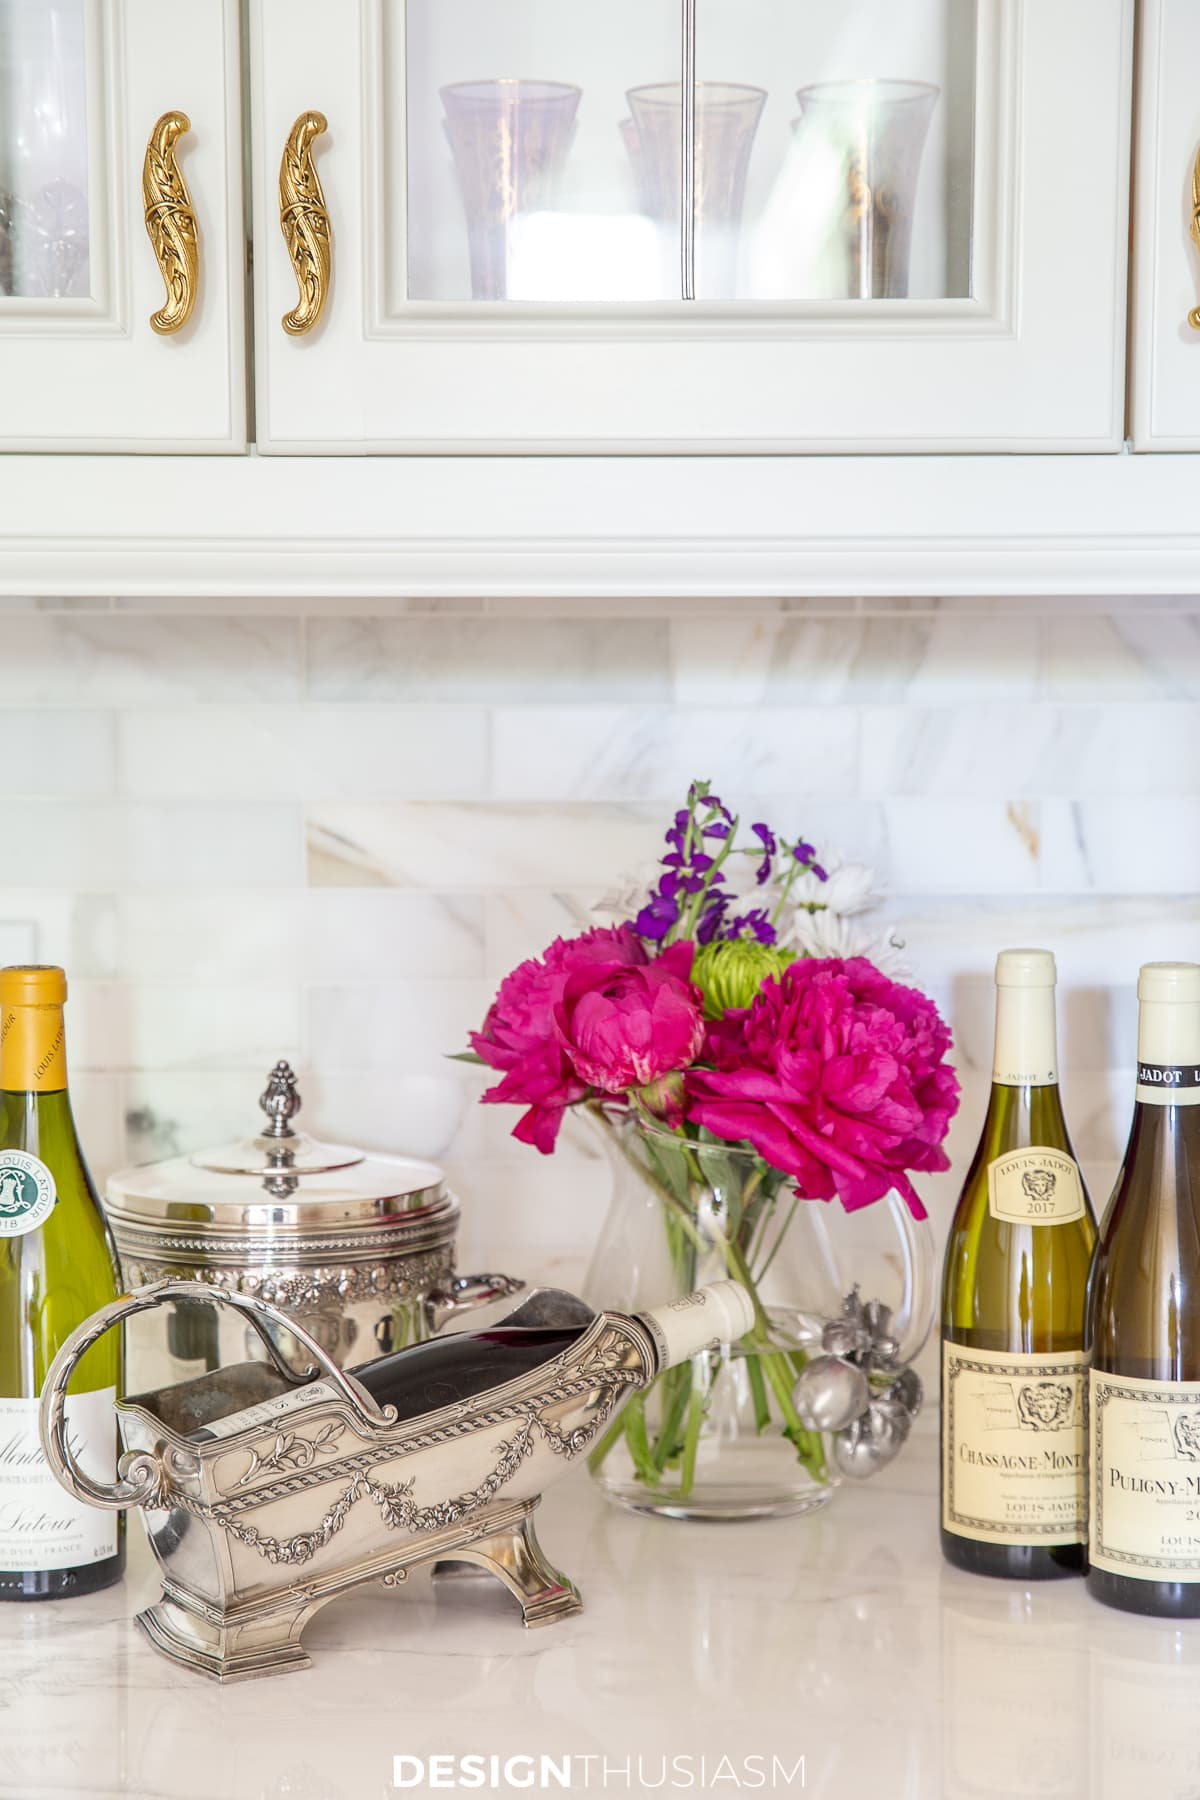 Antique Silver: Adding Personality to Your Home with Vintage Silver